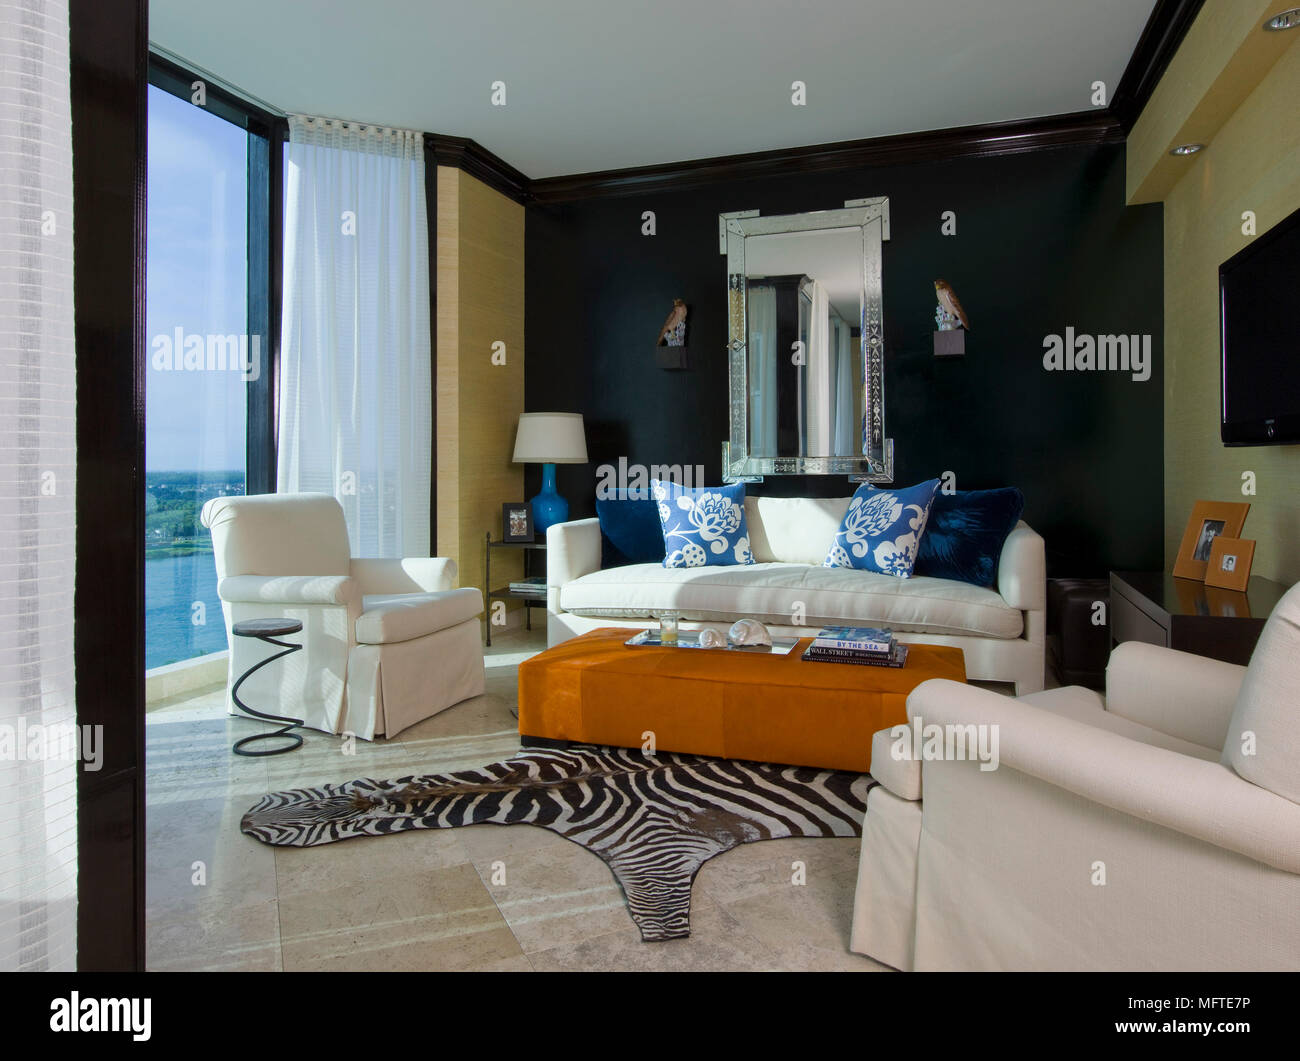 Upholstered Seating Around Ottoman In Modern Sitting Room